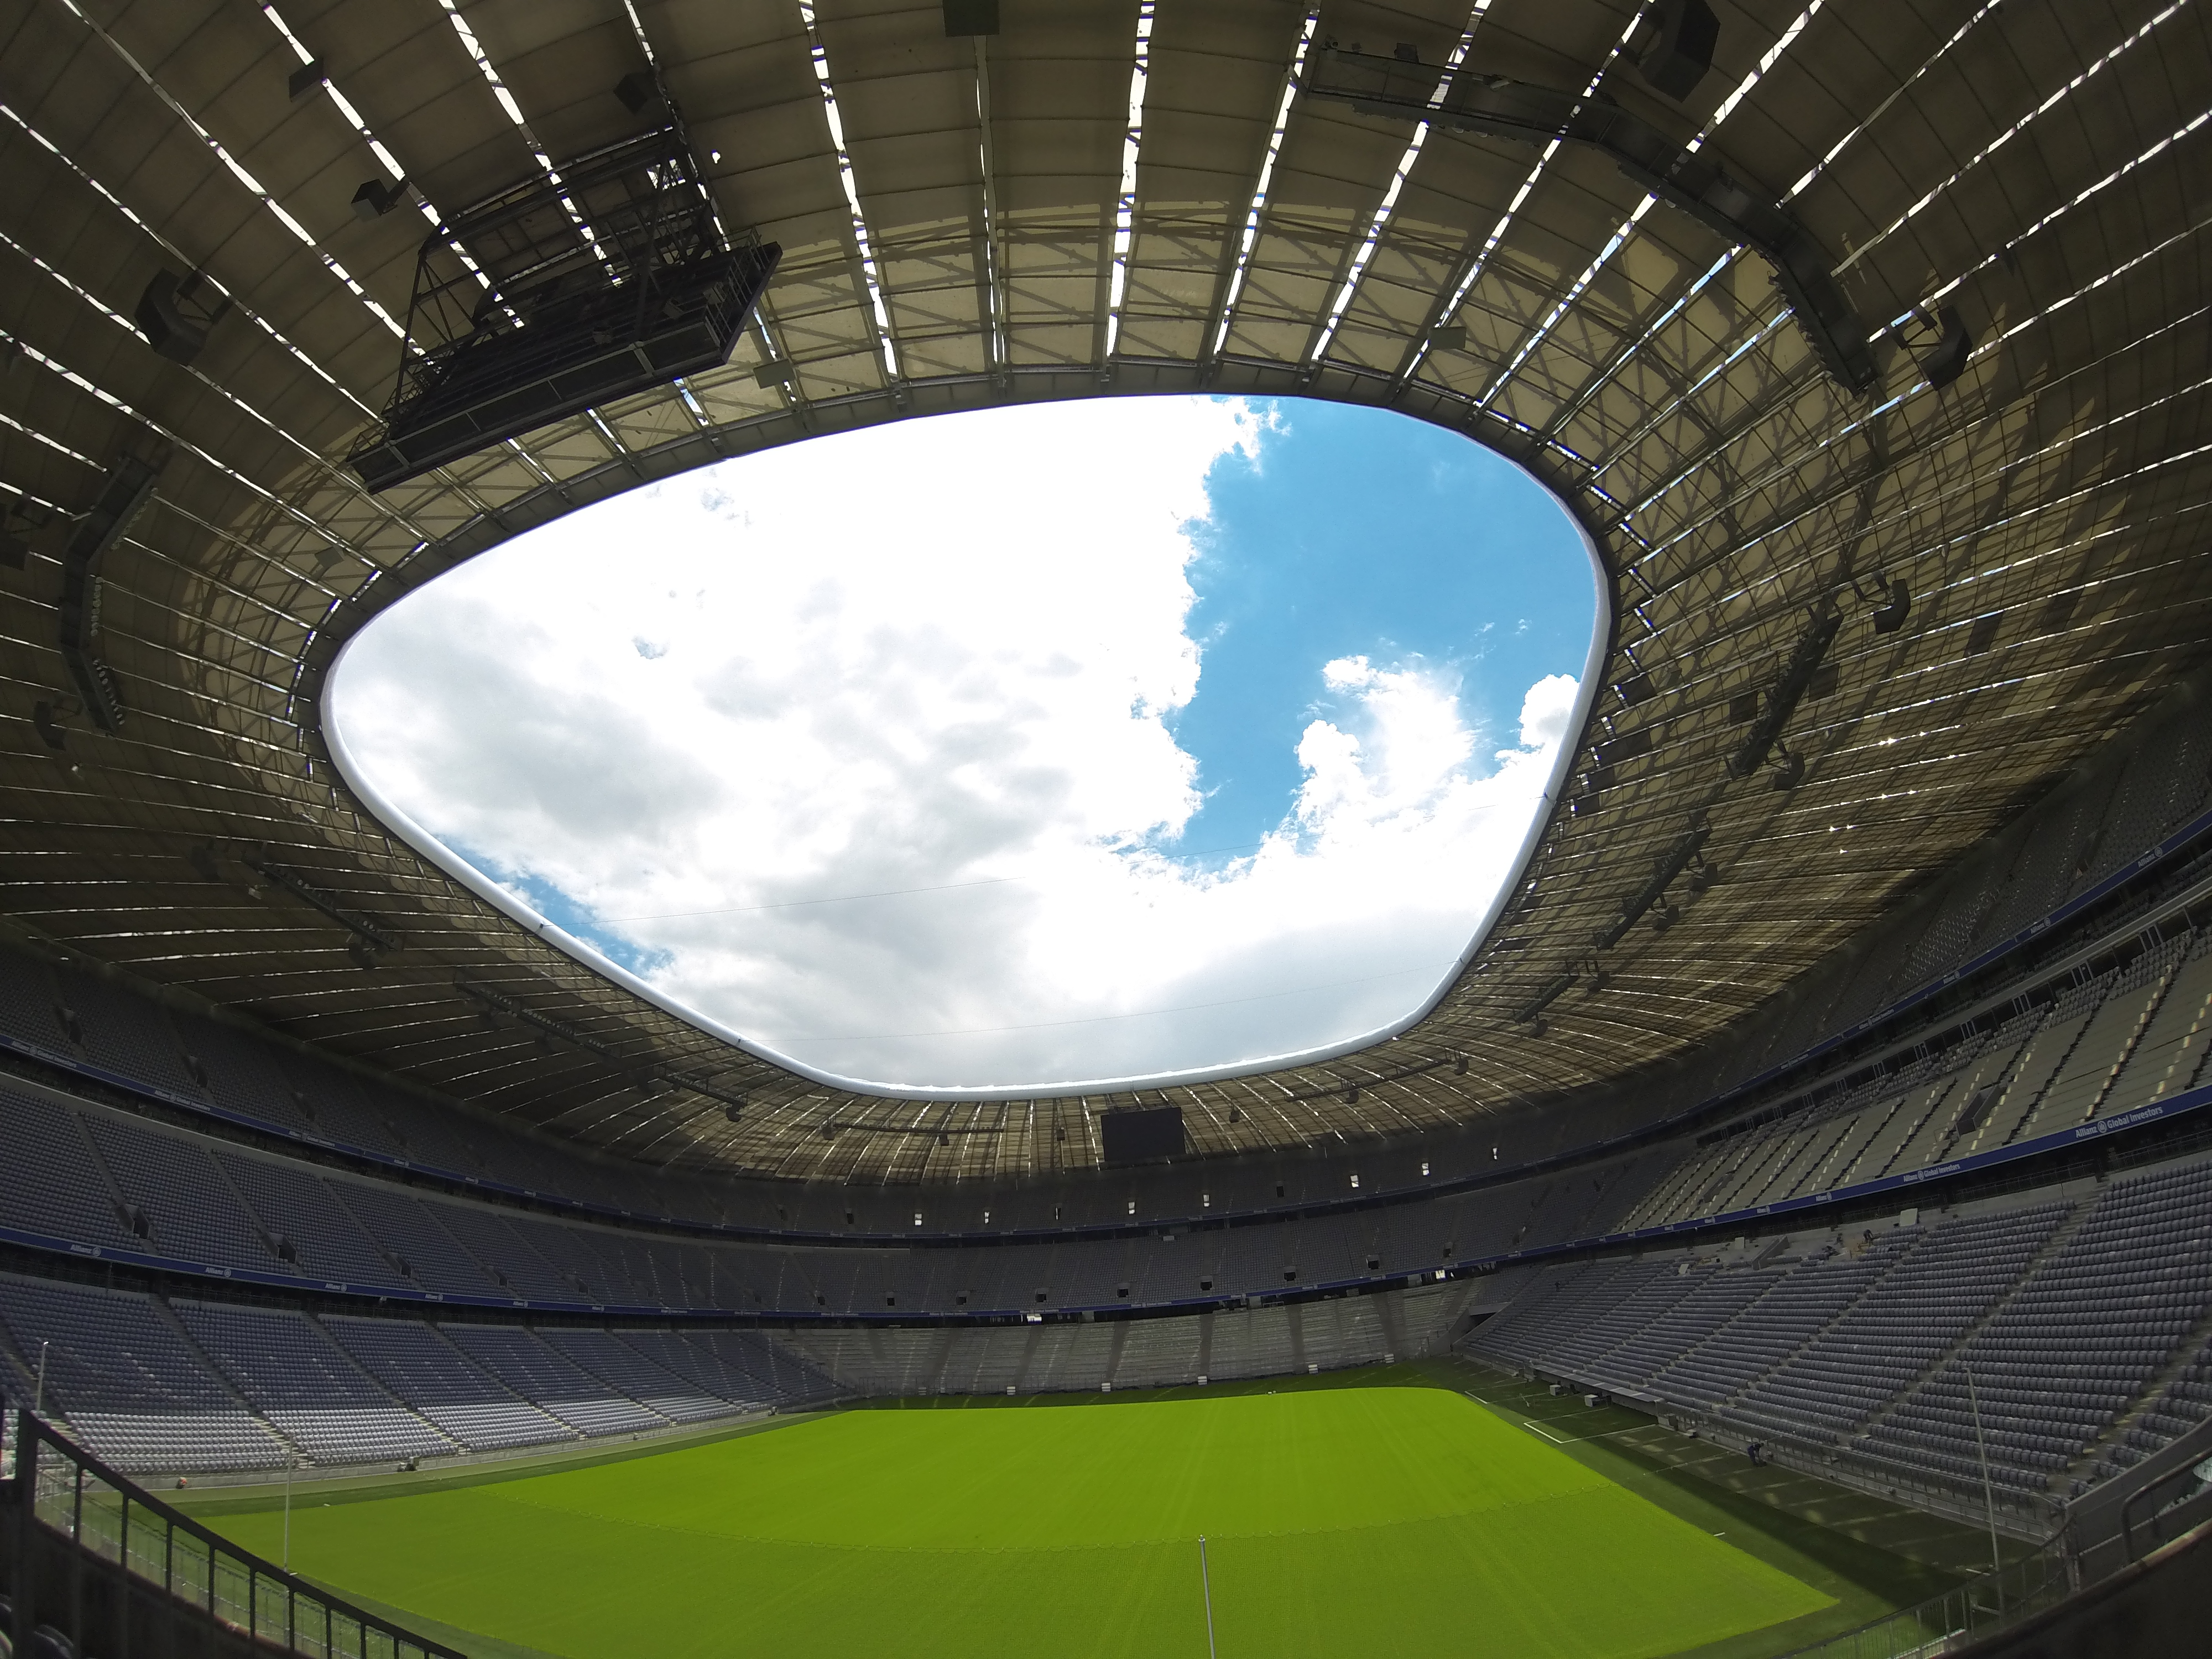 Stadium Allianz